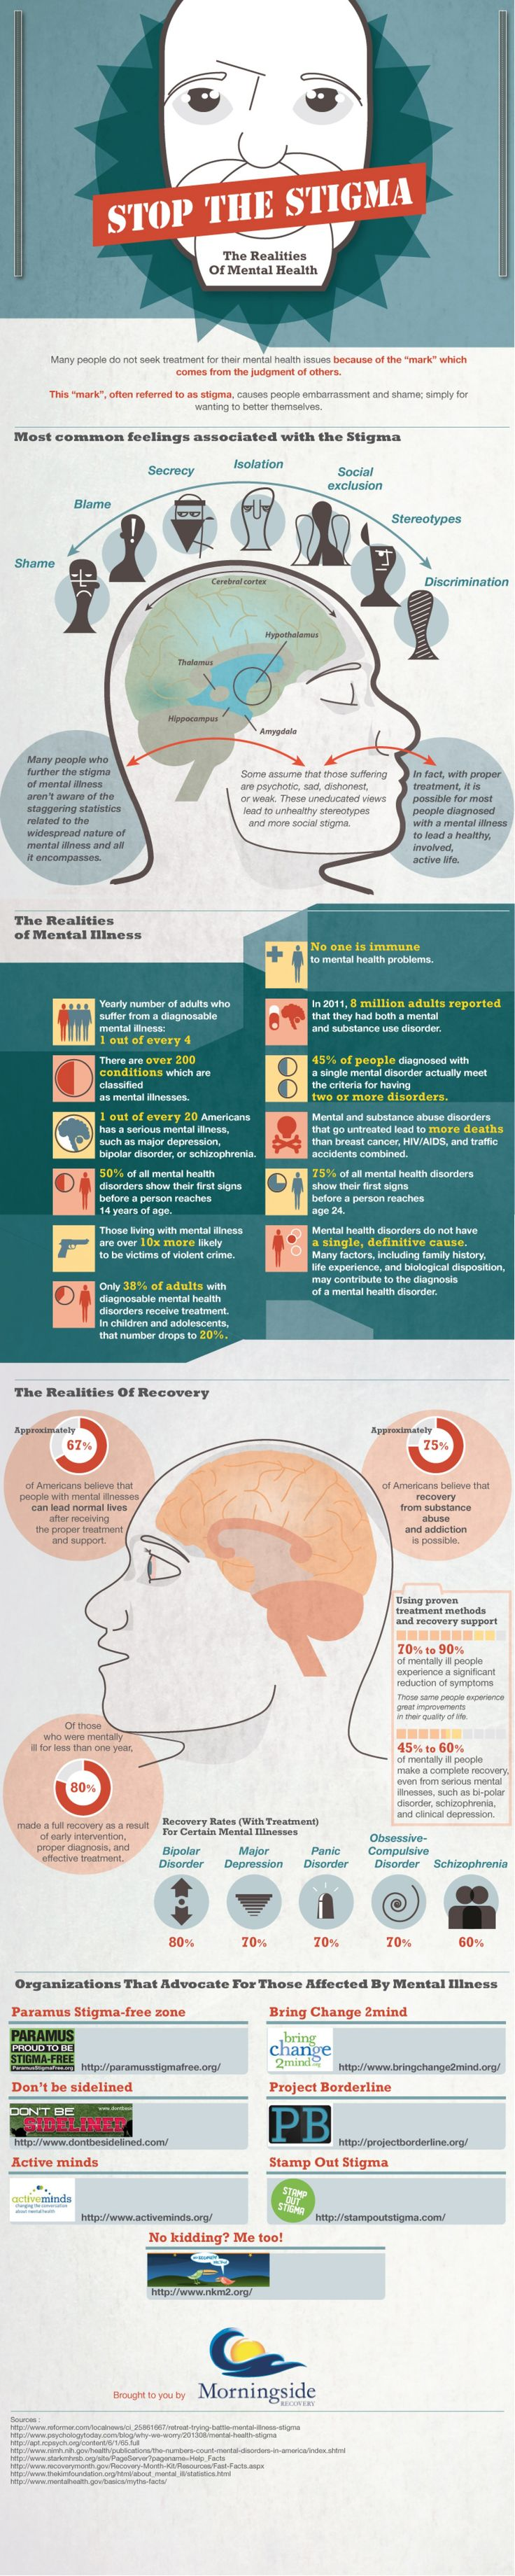 Stop The Stigma : The Realities Of Mental Health --shared by Michaelson on Jun 30, 2014 - See more at: http://visual.ly/stop-stigma-realities-mental-health#sthash.LXAwj1Aq.dpuf